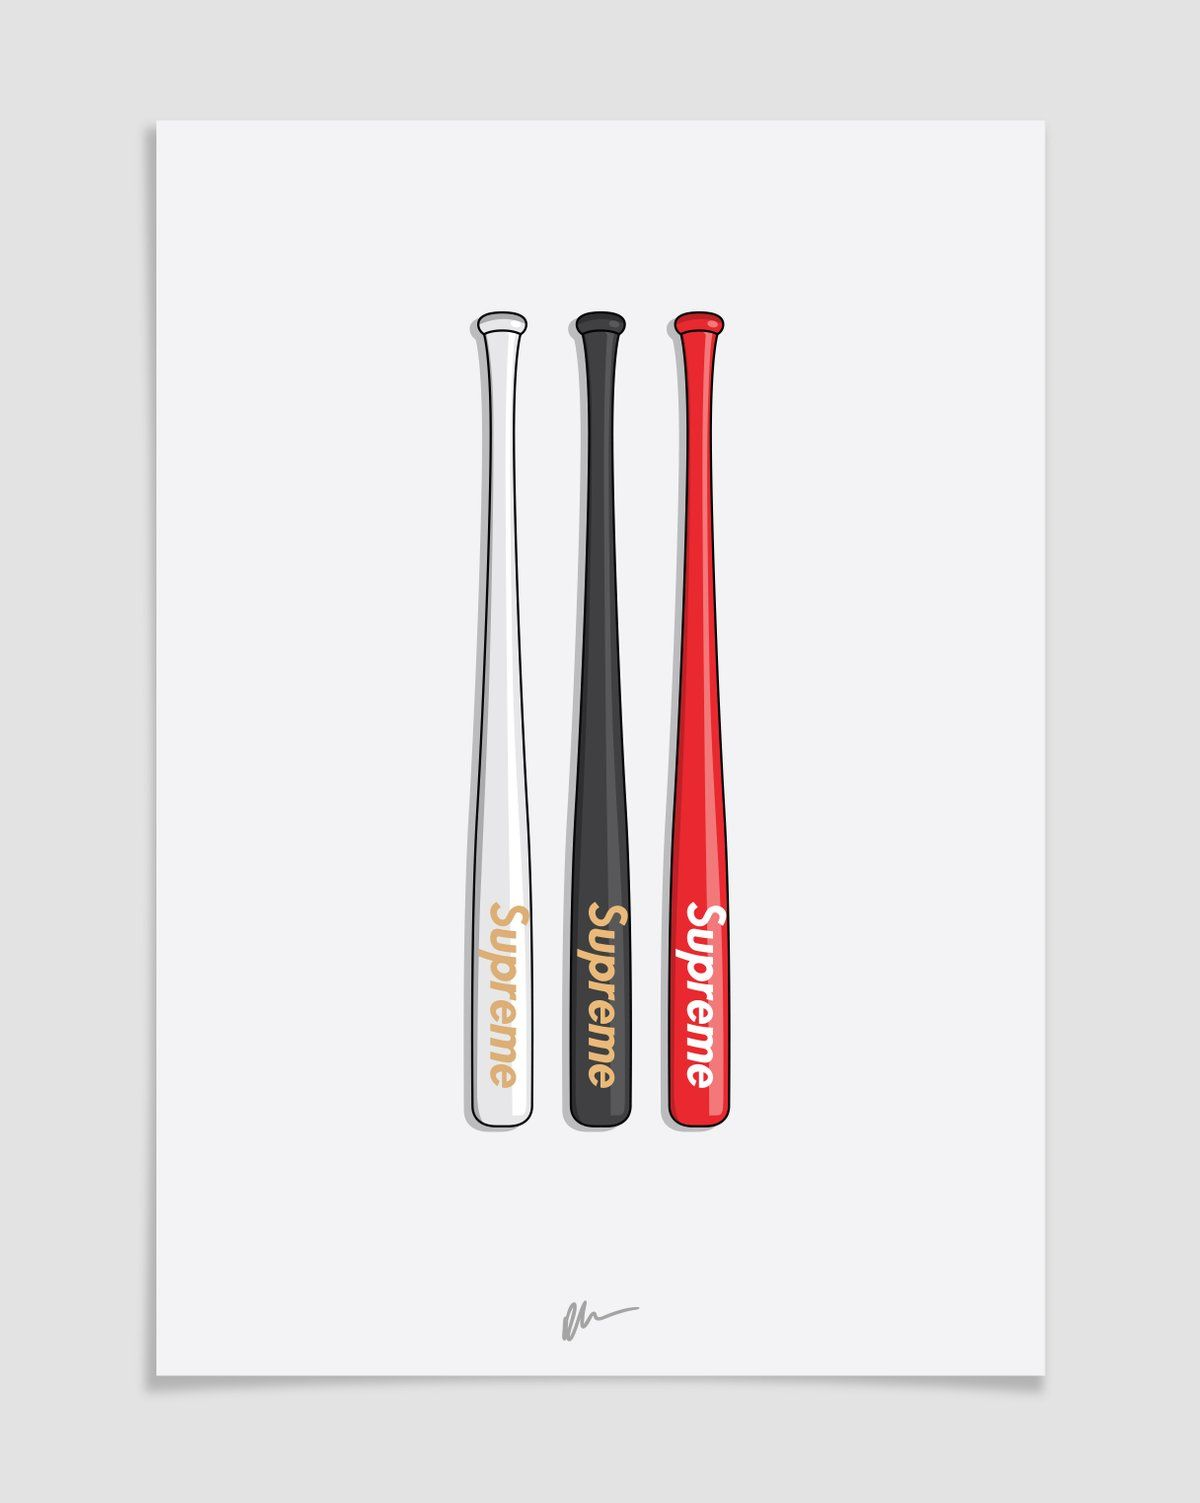 Image of Supreme Slugger Baseball Bats Supreme wallpaper